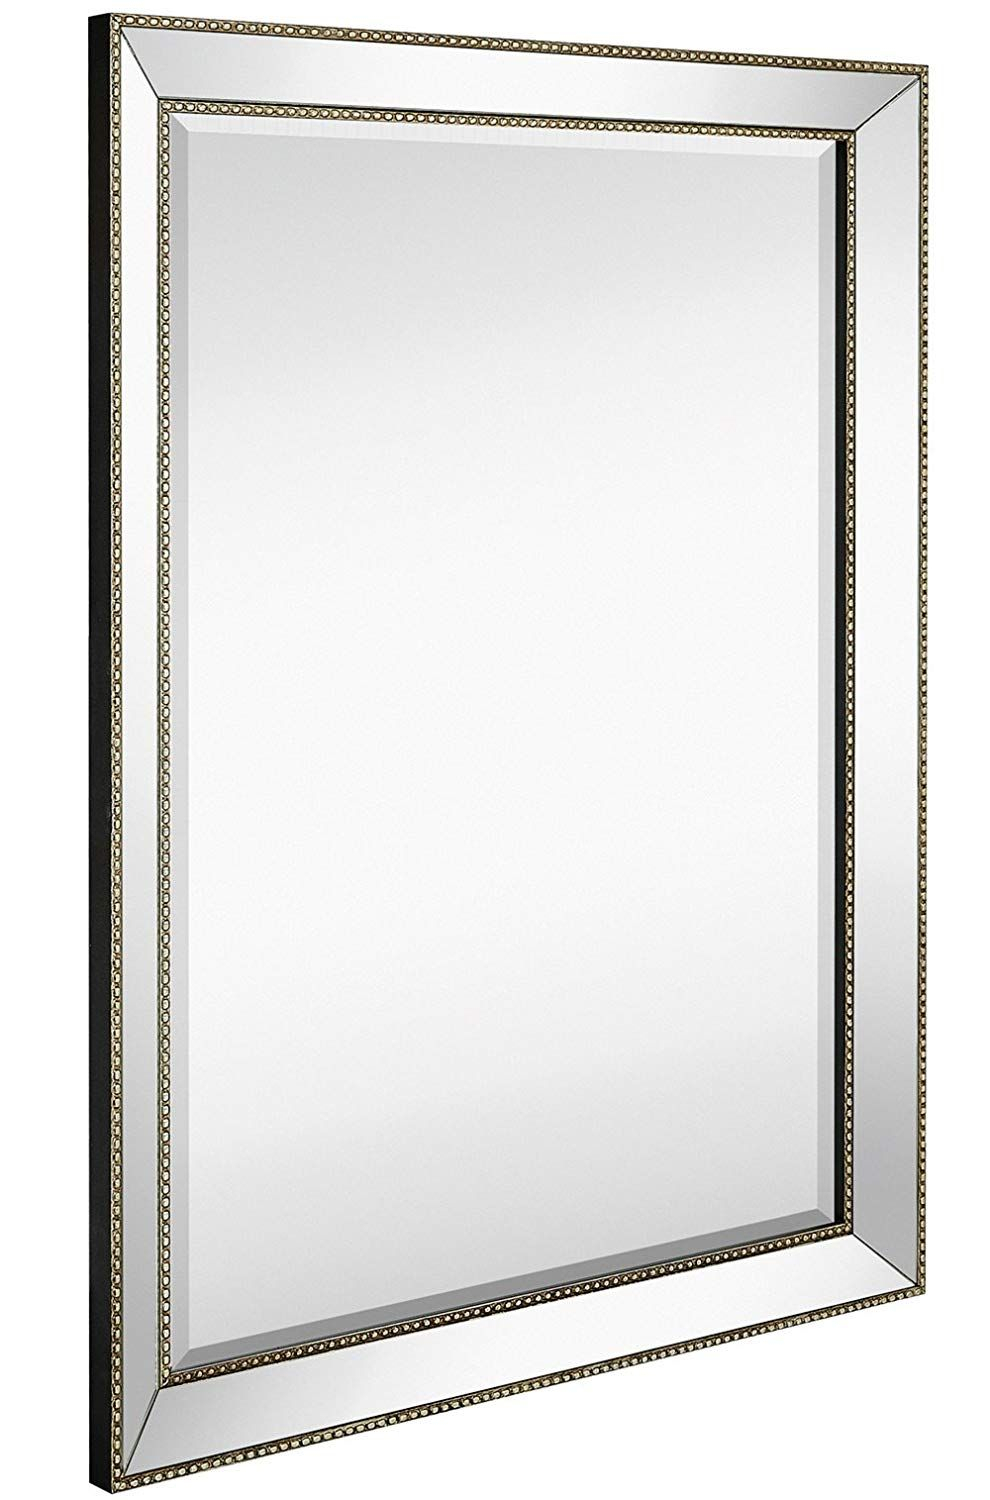 Amazon: Large Framed Wall Mirror With Angled Beveled Throughout Beaded Accent Wall Mirrors (View 7 of 20)